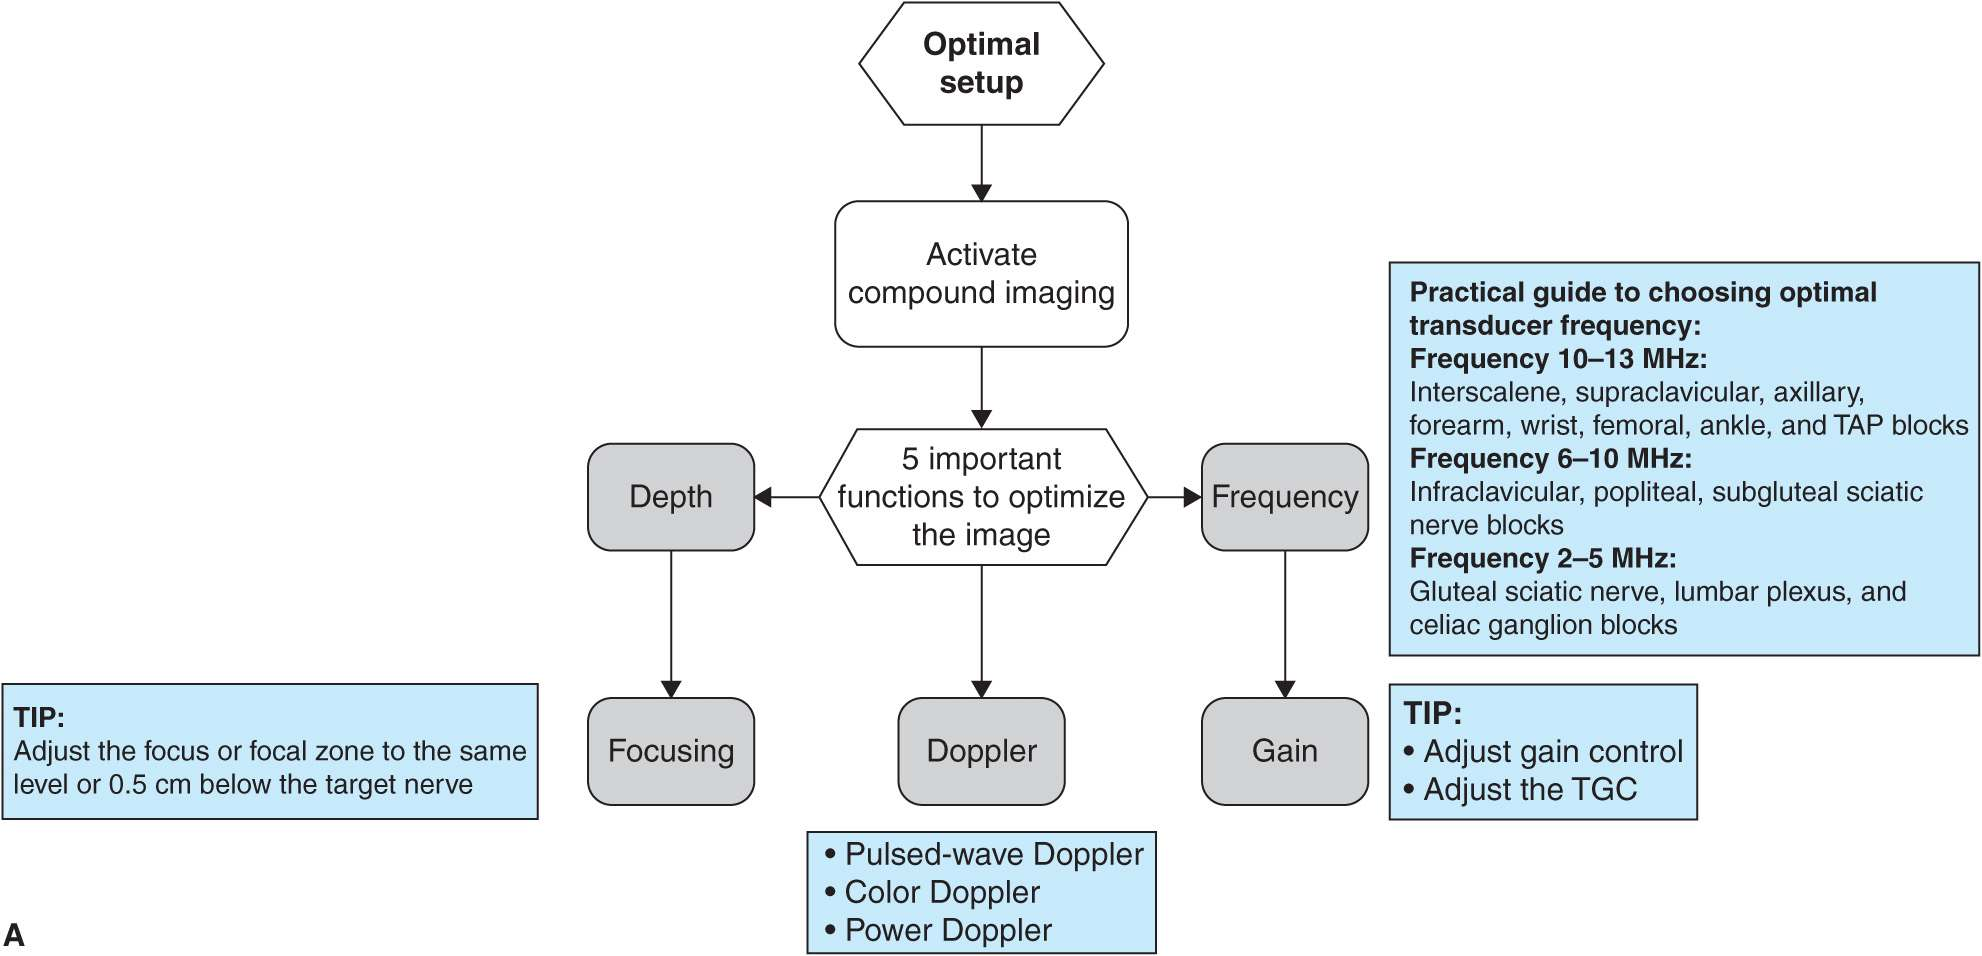 Optimizing an Ultrasound Image | Anesthesia Key